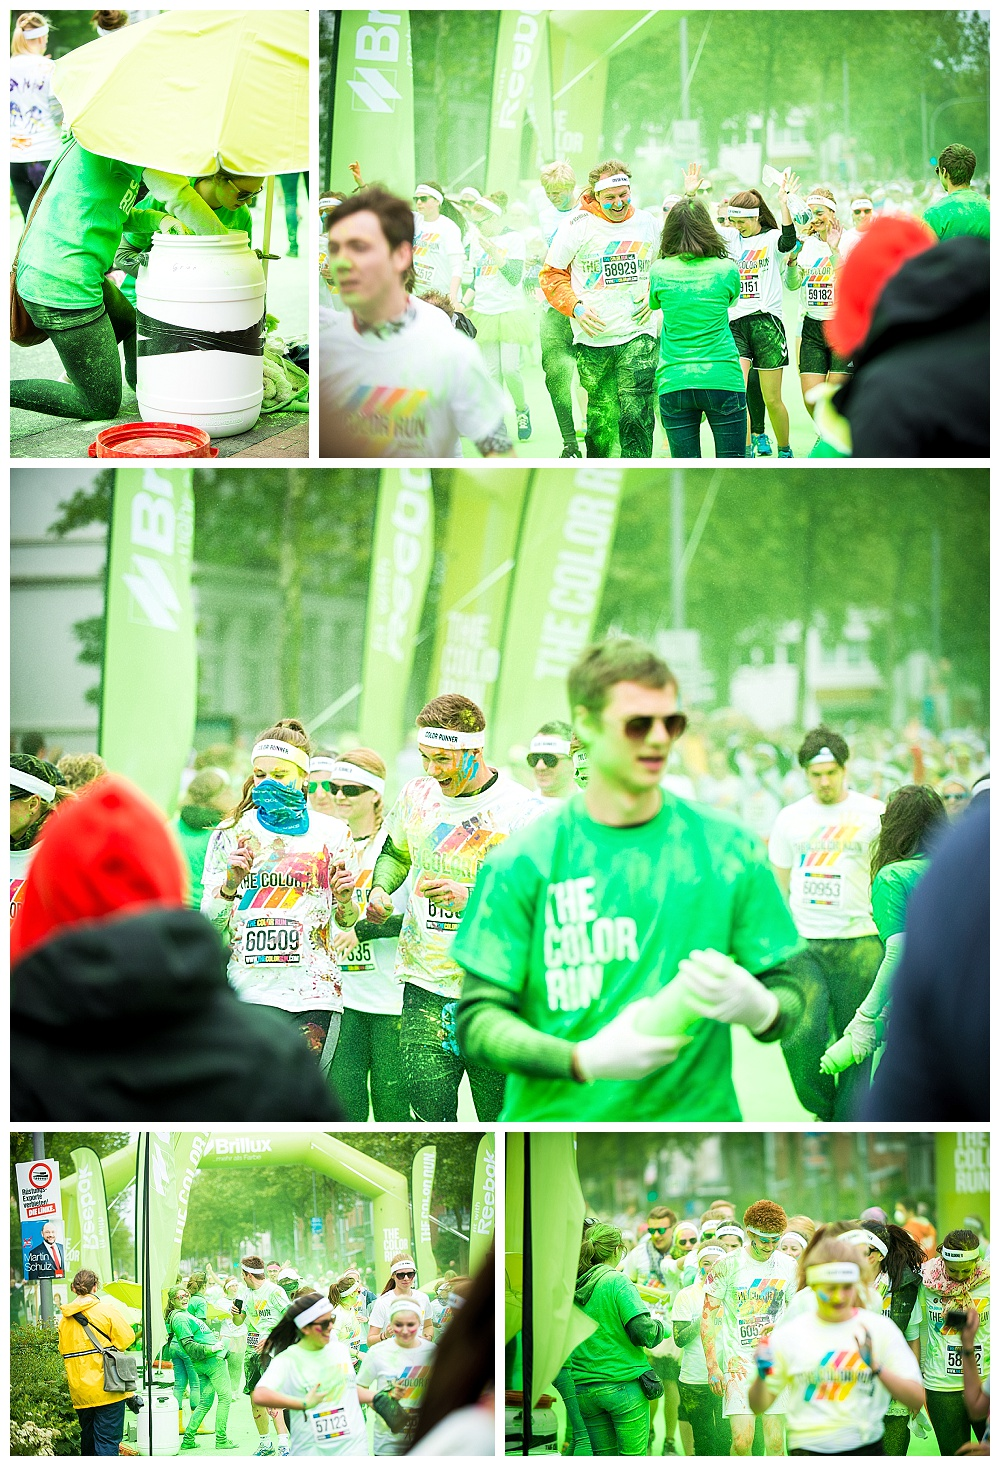 thecolorrun-muenster_marcel-aulbach07